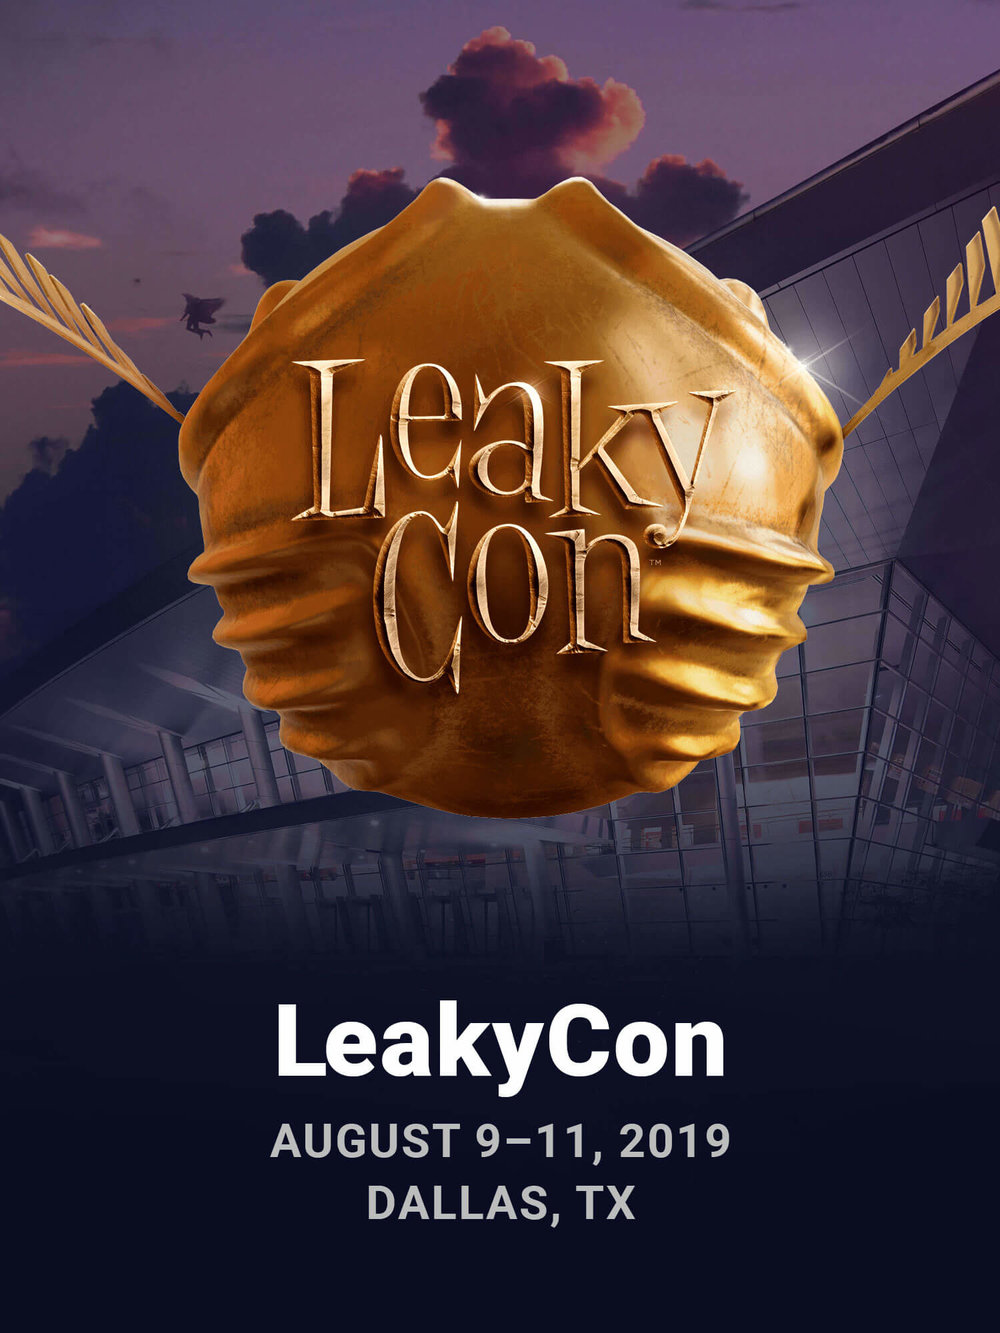 LeakyCon Dallas